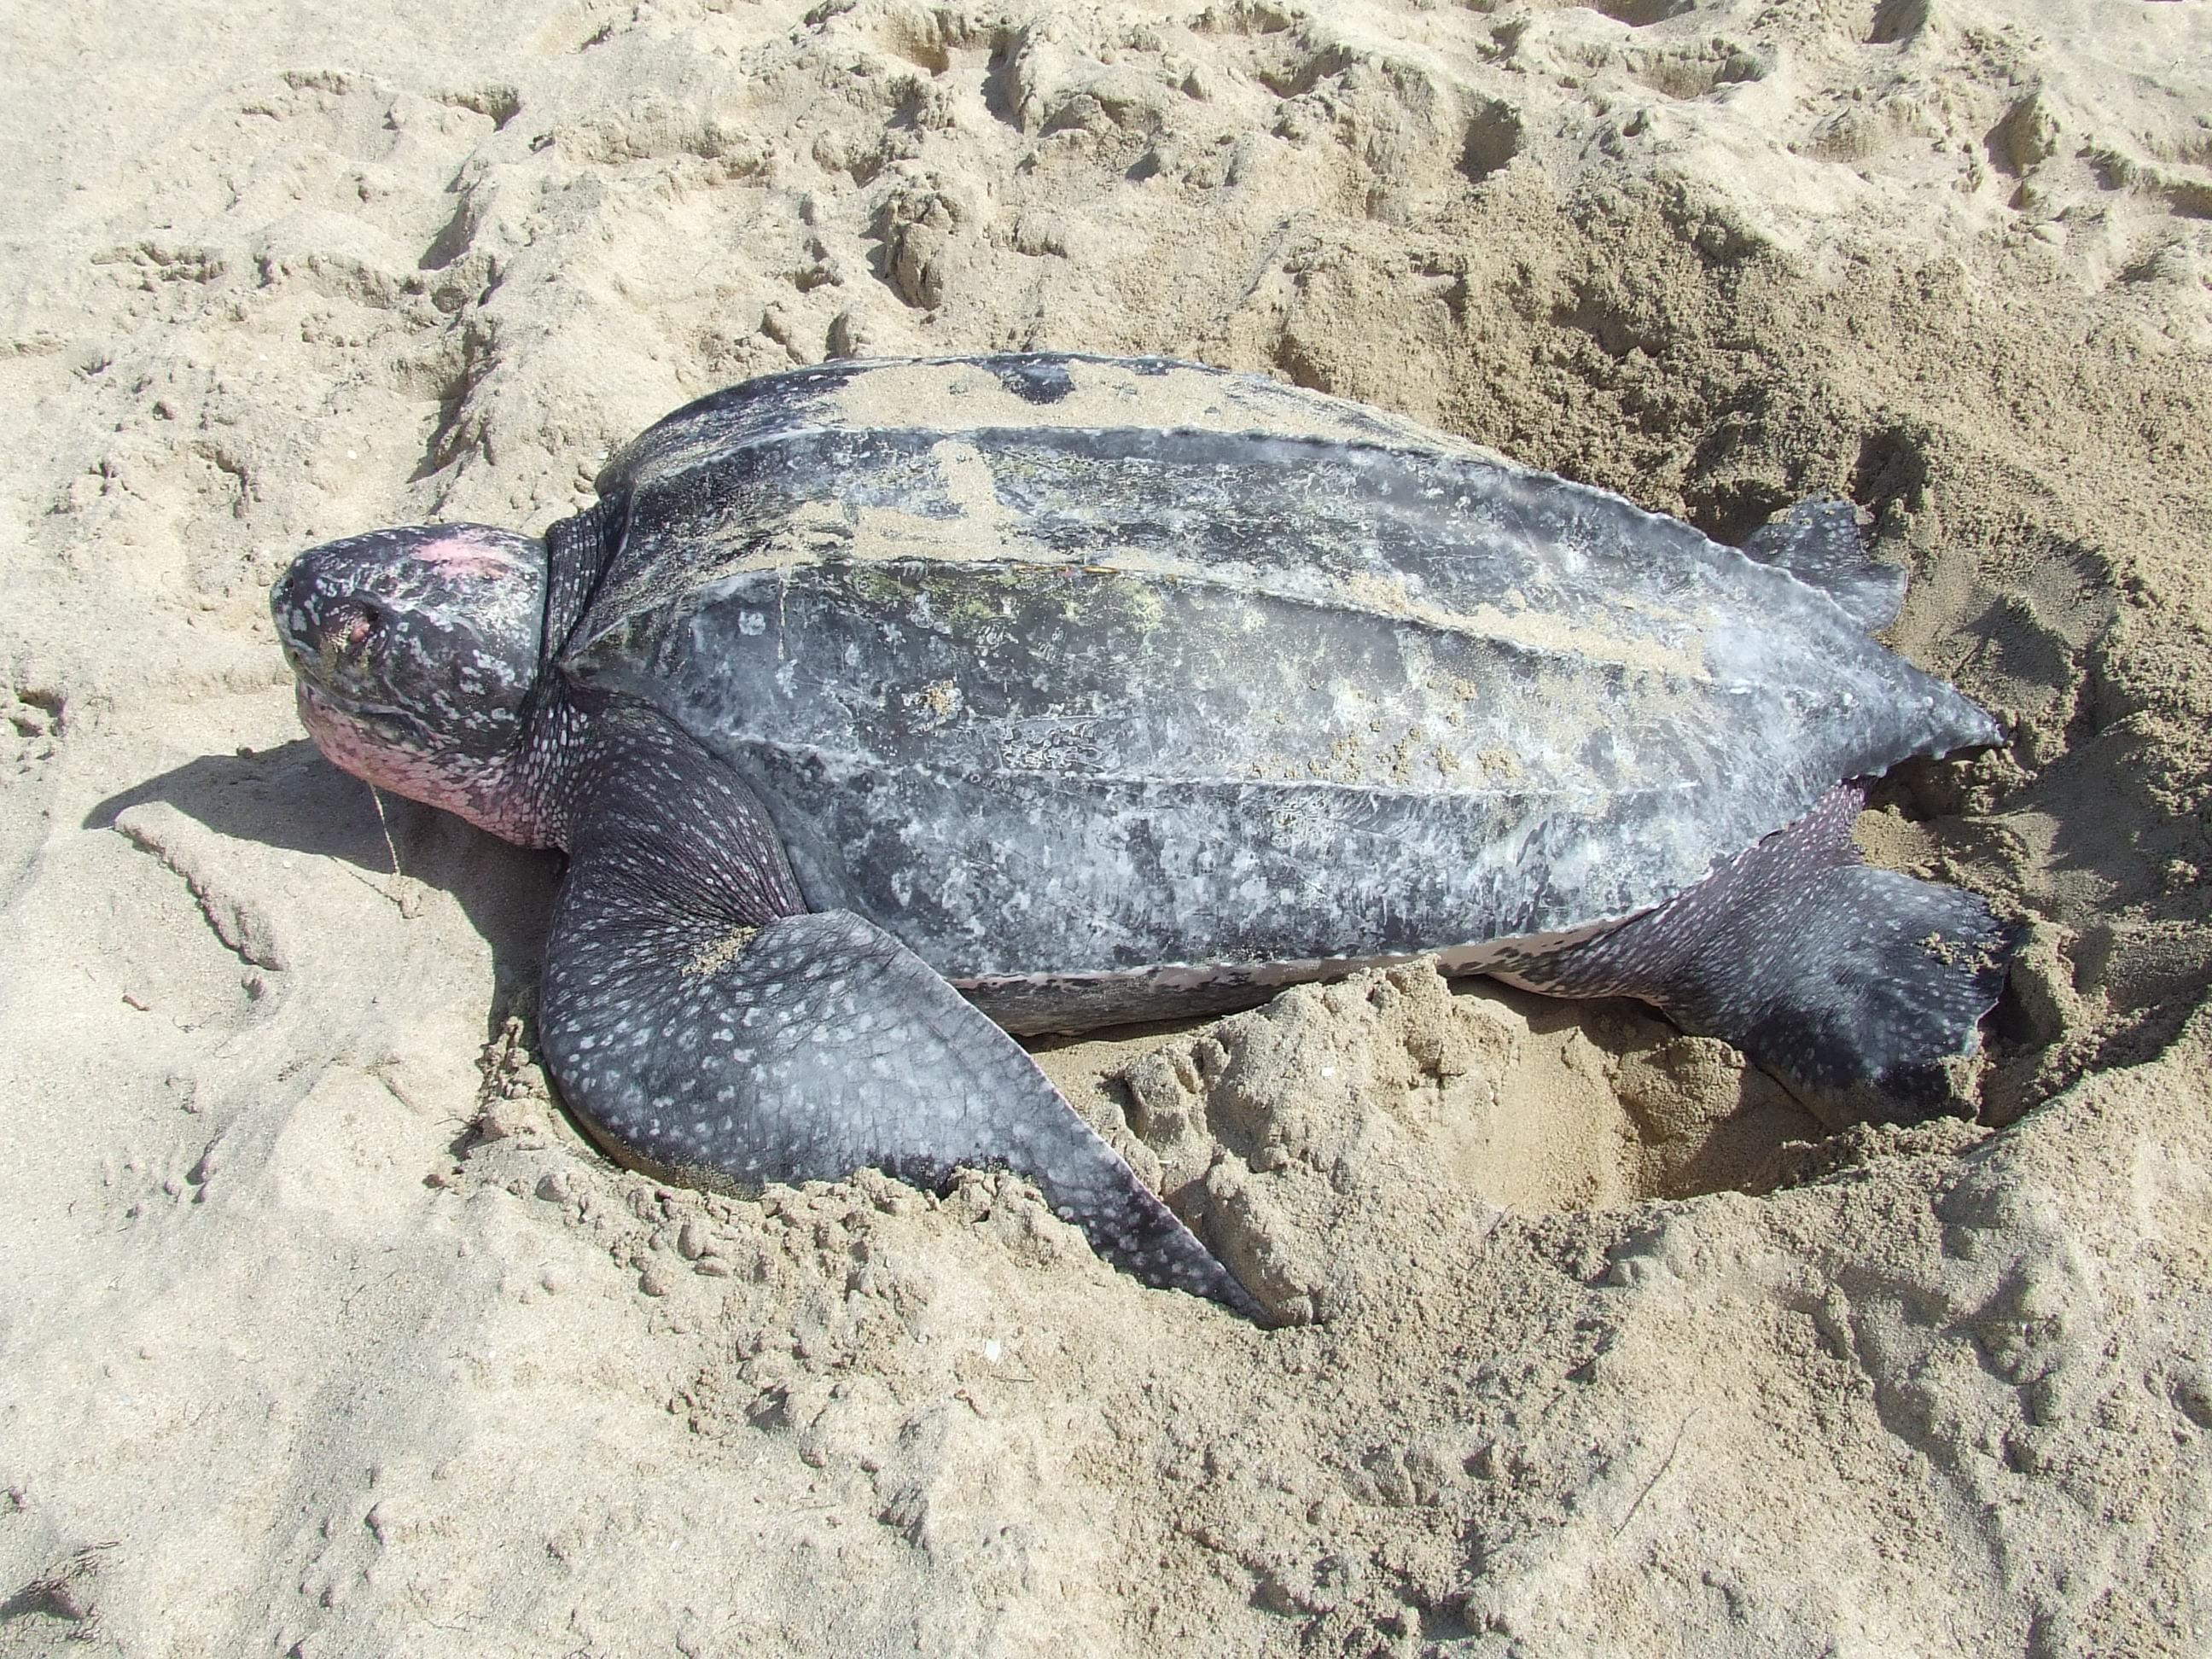 Leatherback turtle rescued off town's beach